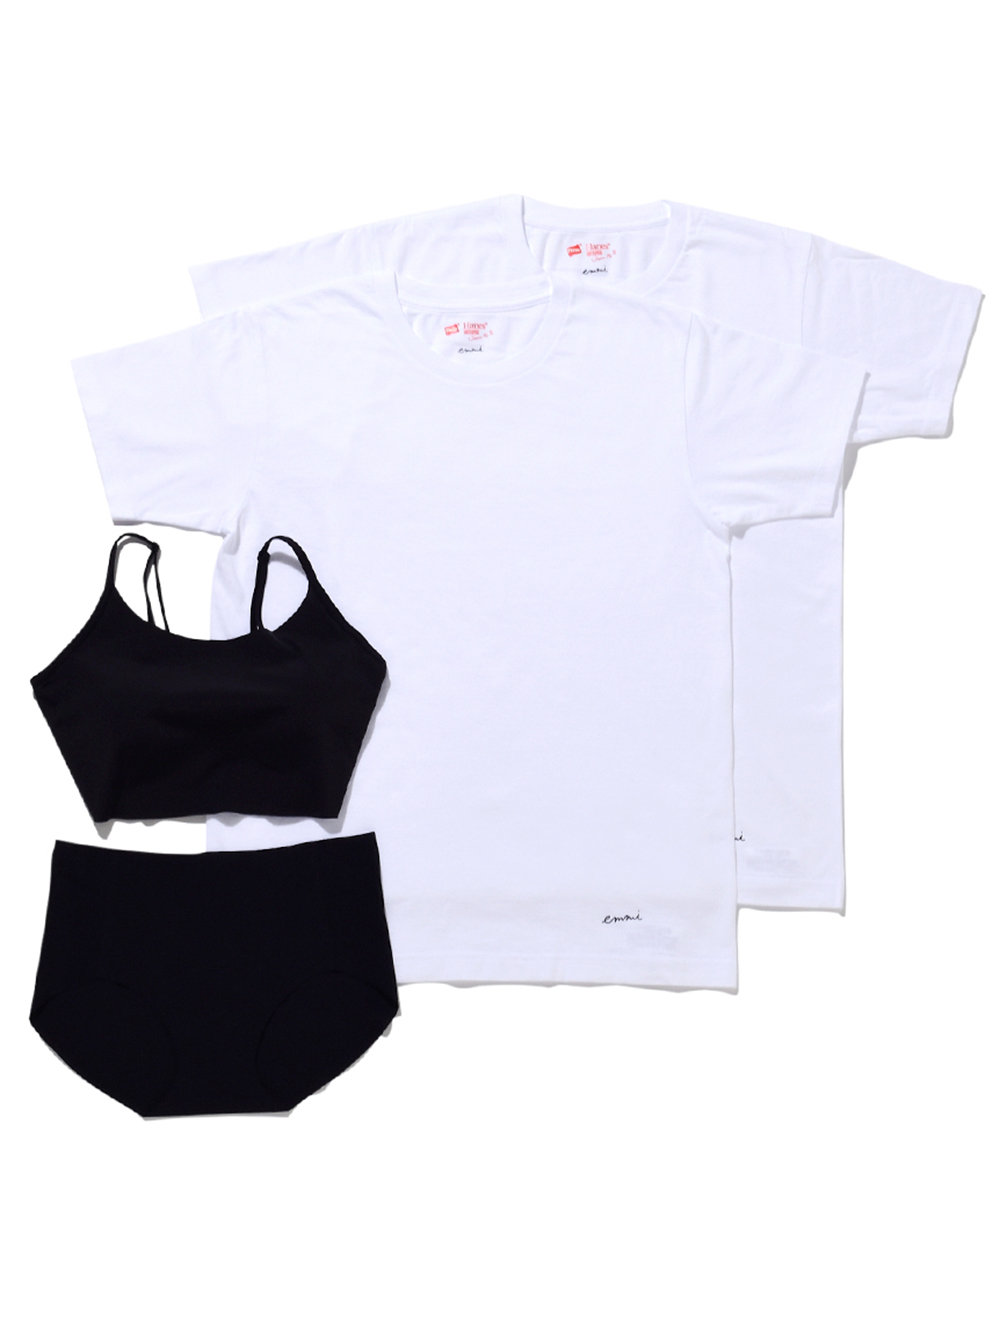 #STAY HOME SELECT INNER PACK